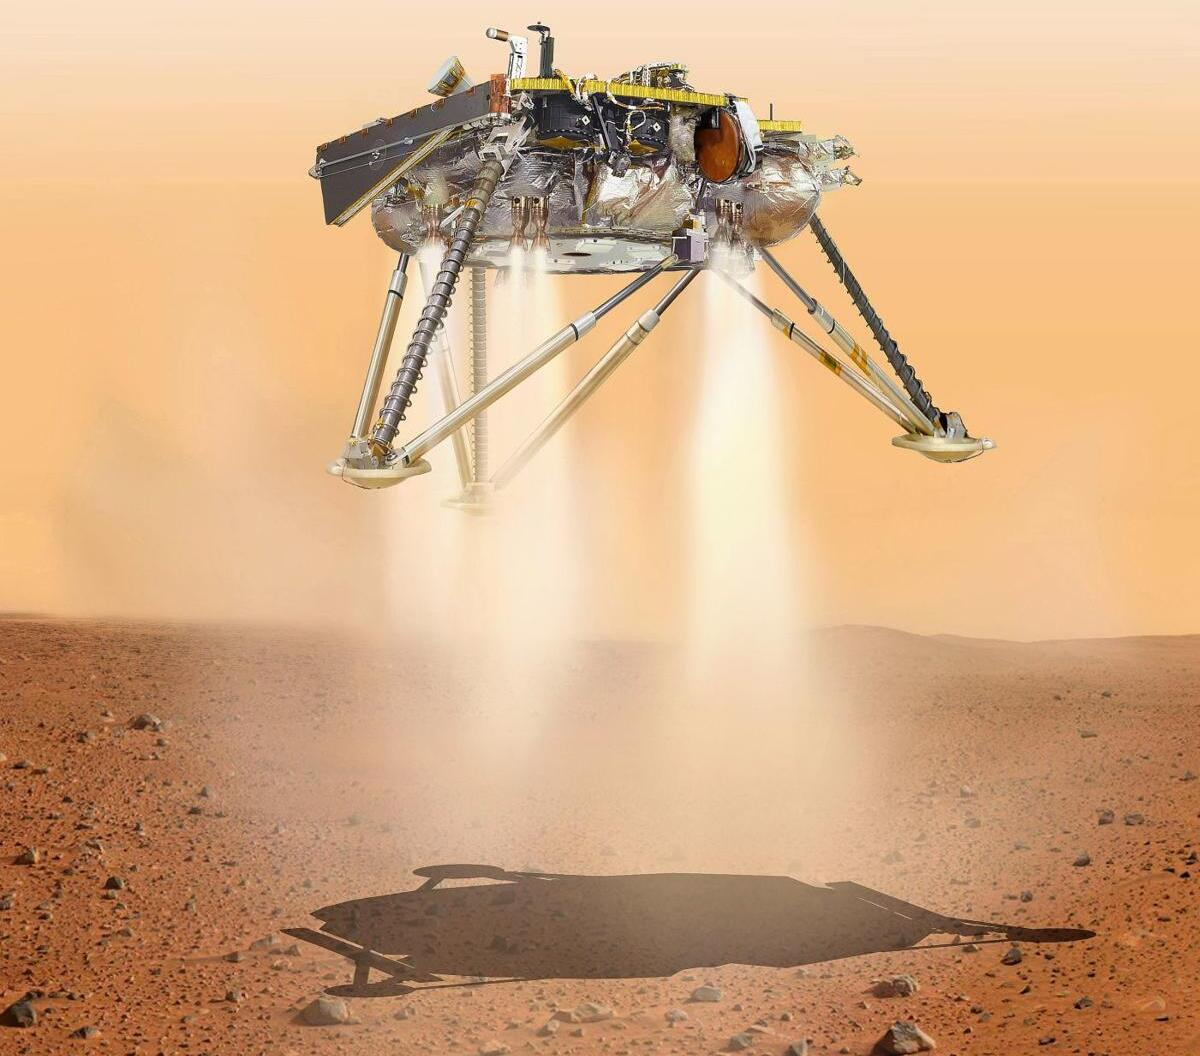 Will humanity put people on Mars in your lifetime?